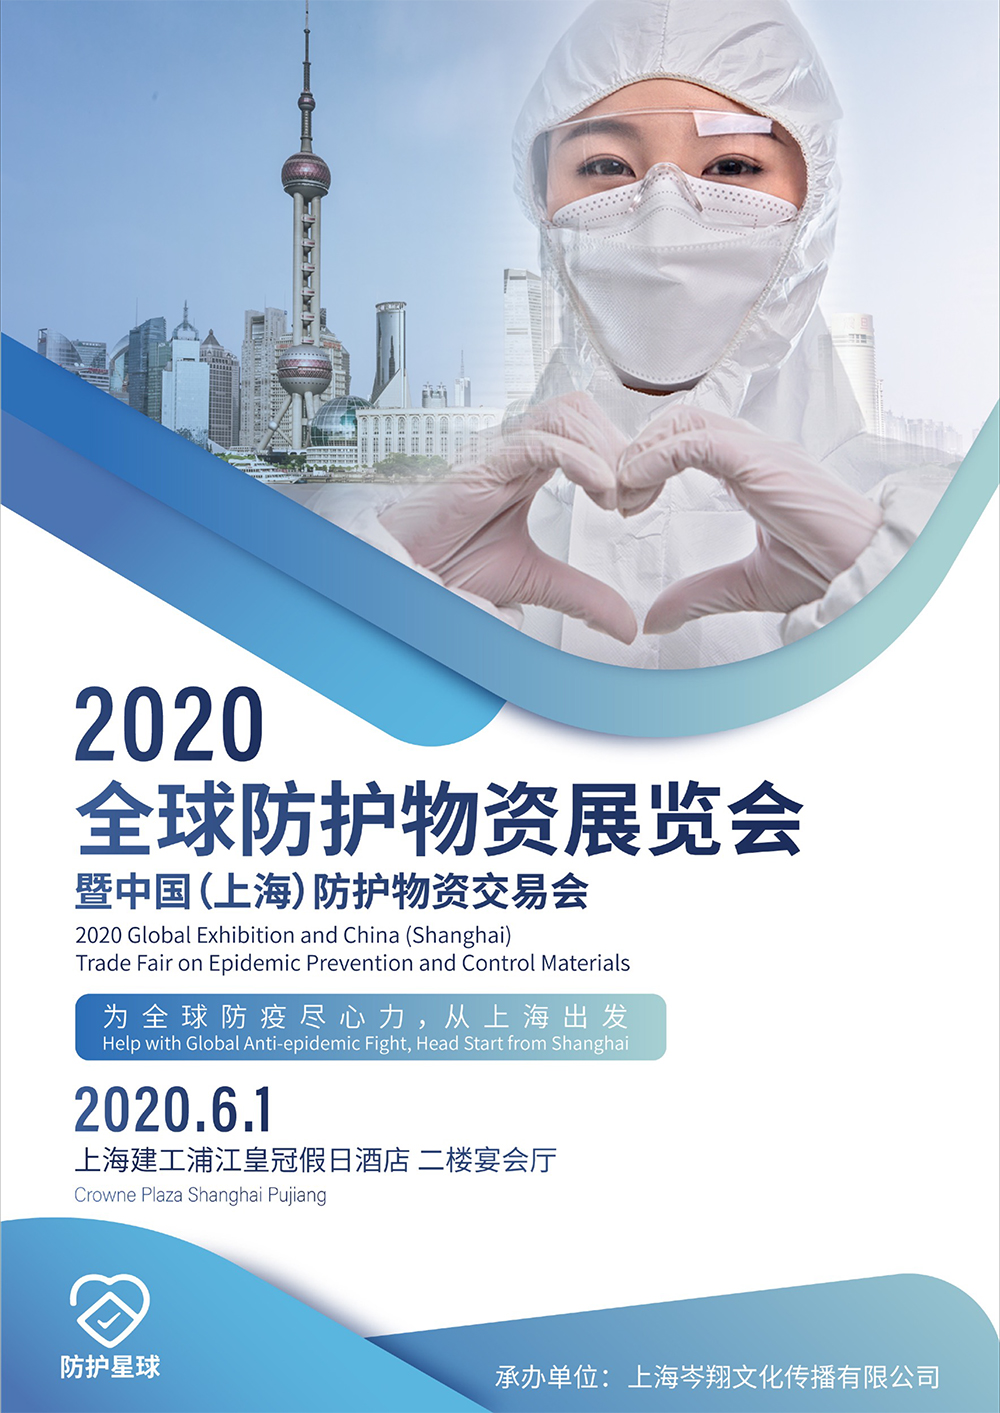 Global Protective Materials Exhibition Investment Manual 0514-1